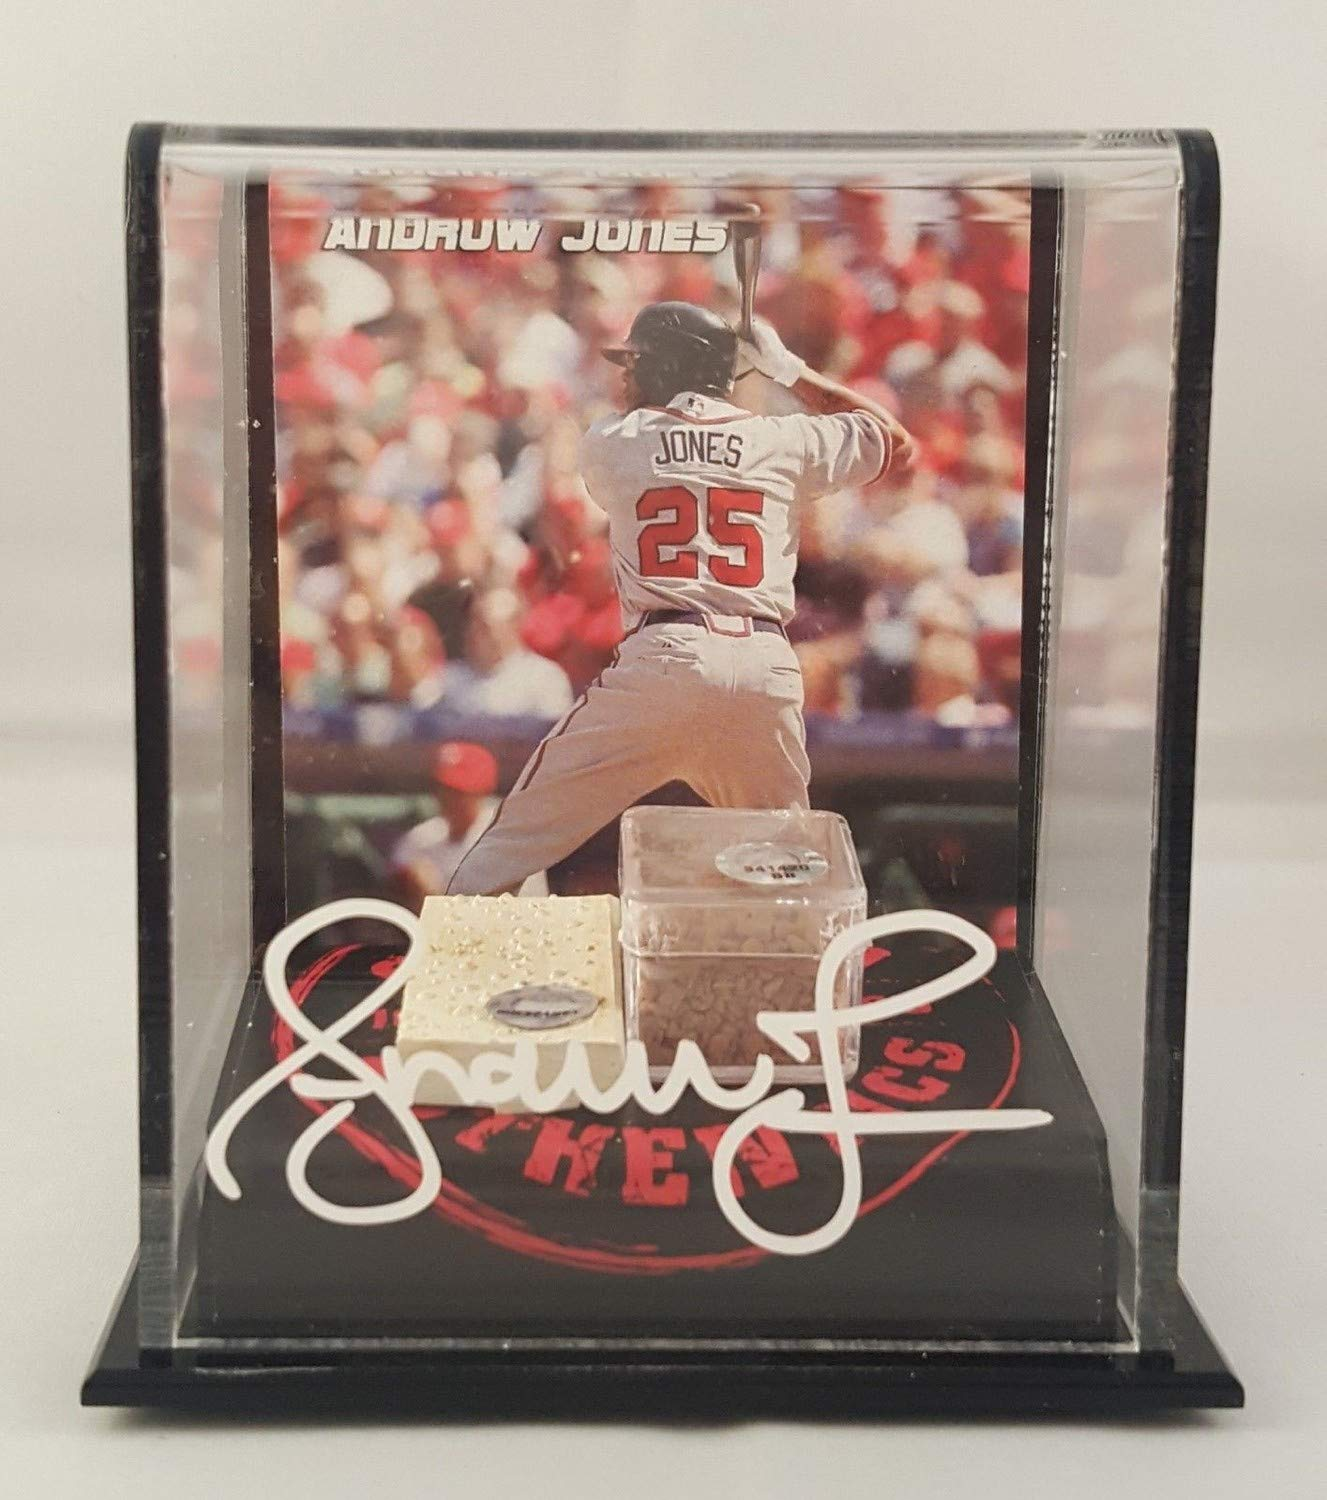 Andruw Jones Autographed Autographed Signed Game Used Dirt&Base Atlanta Braves JSA